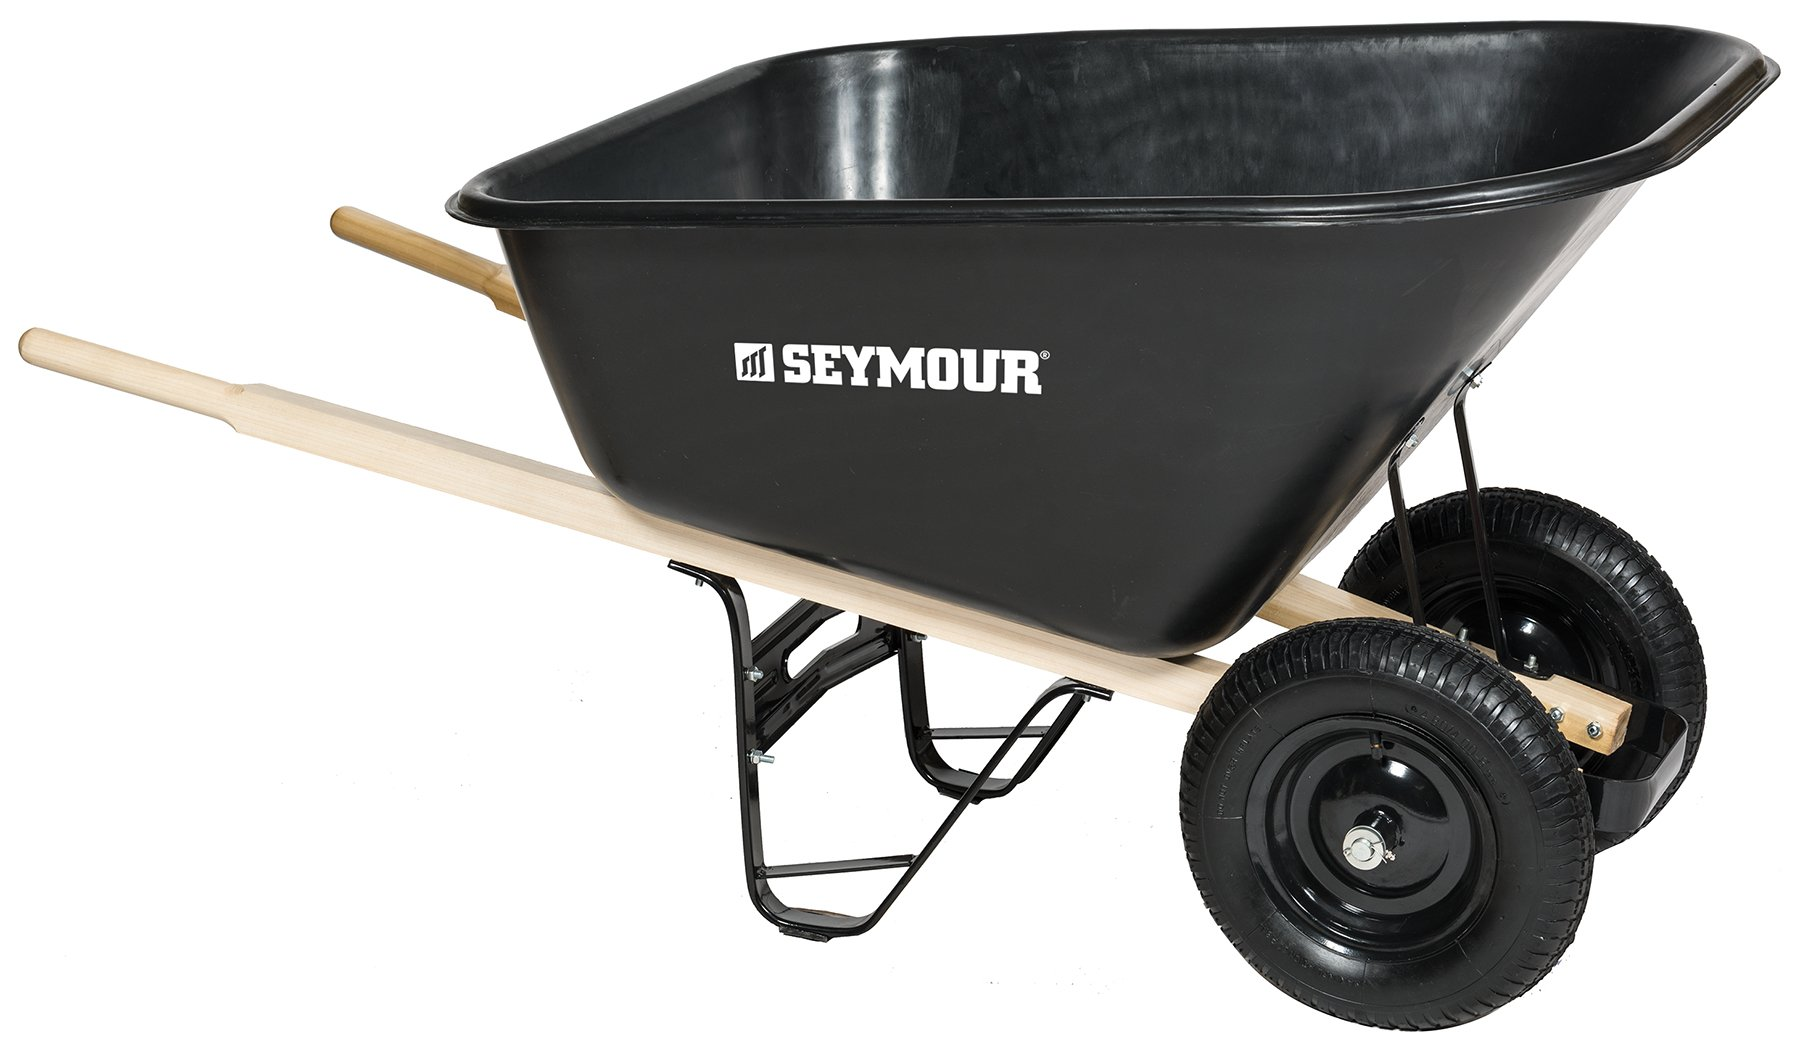 Seymour 85765 Wheelbarrow, 60 x 35.25 x 19.5''